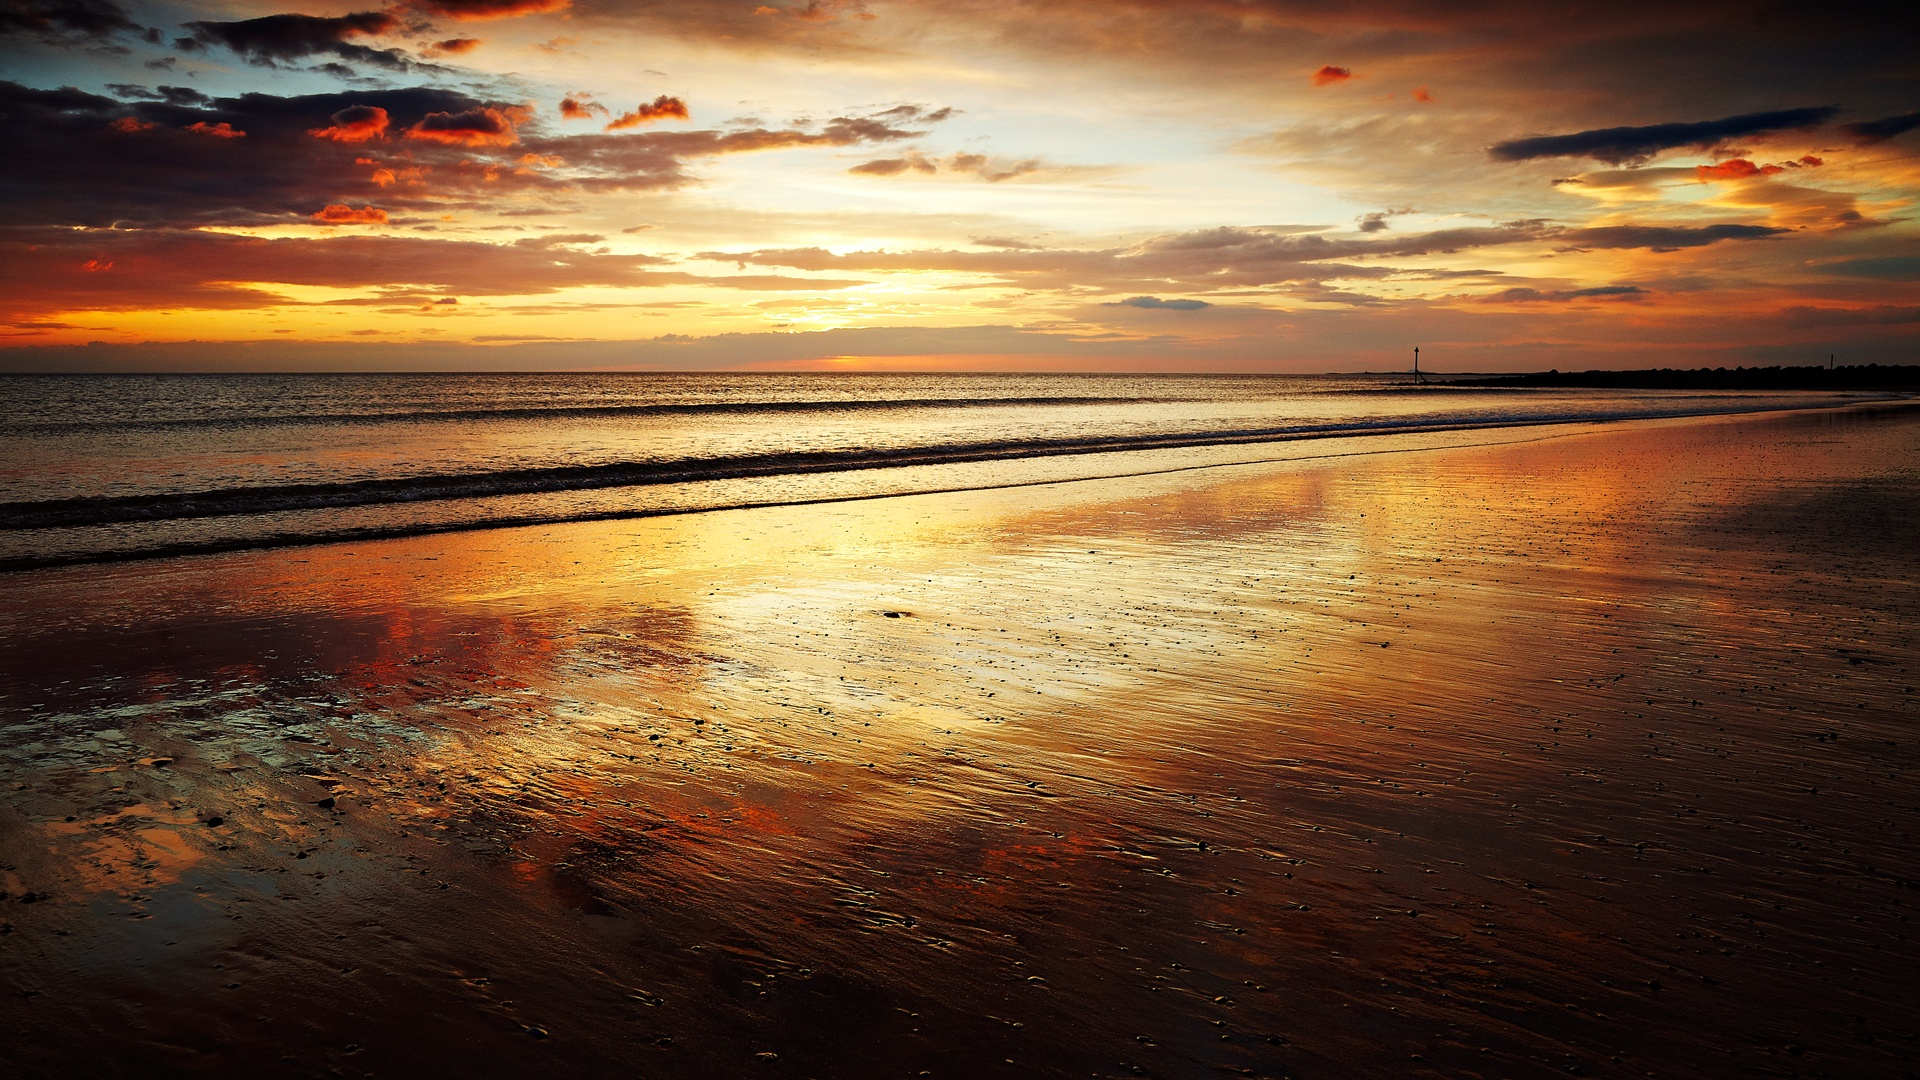 Scotland Sea Sunset And Colorful Sky Wallpapers ...